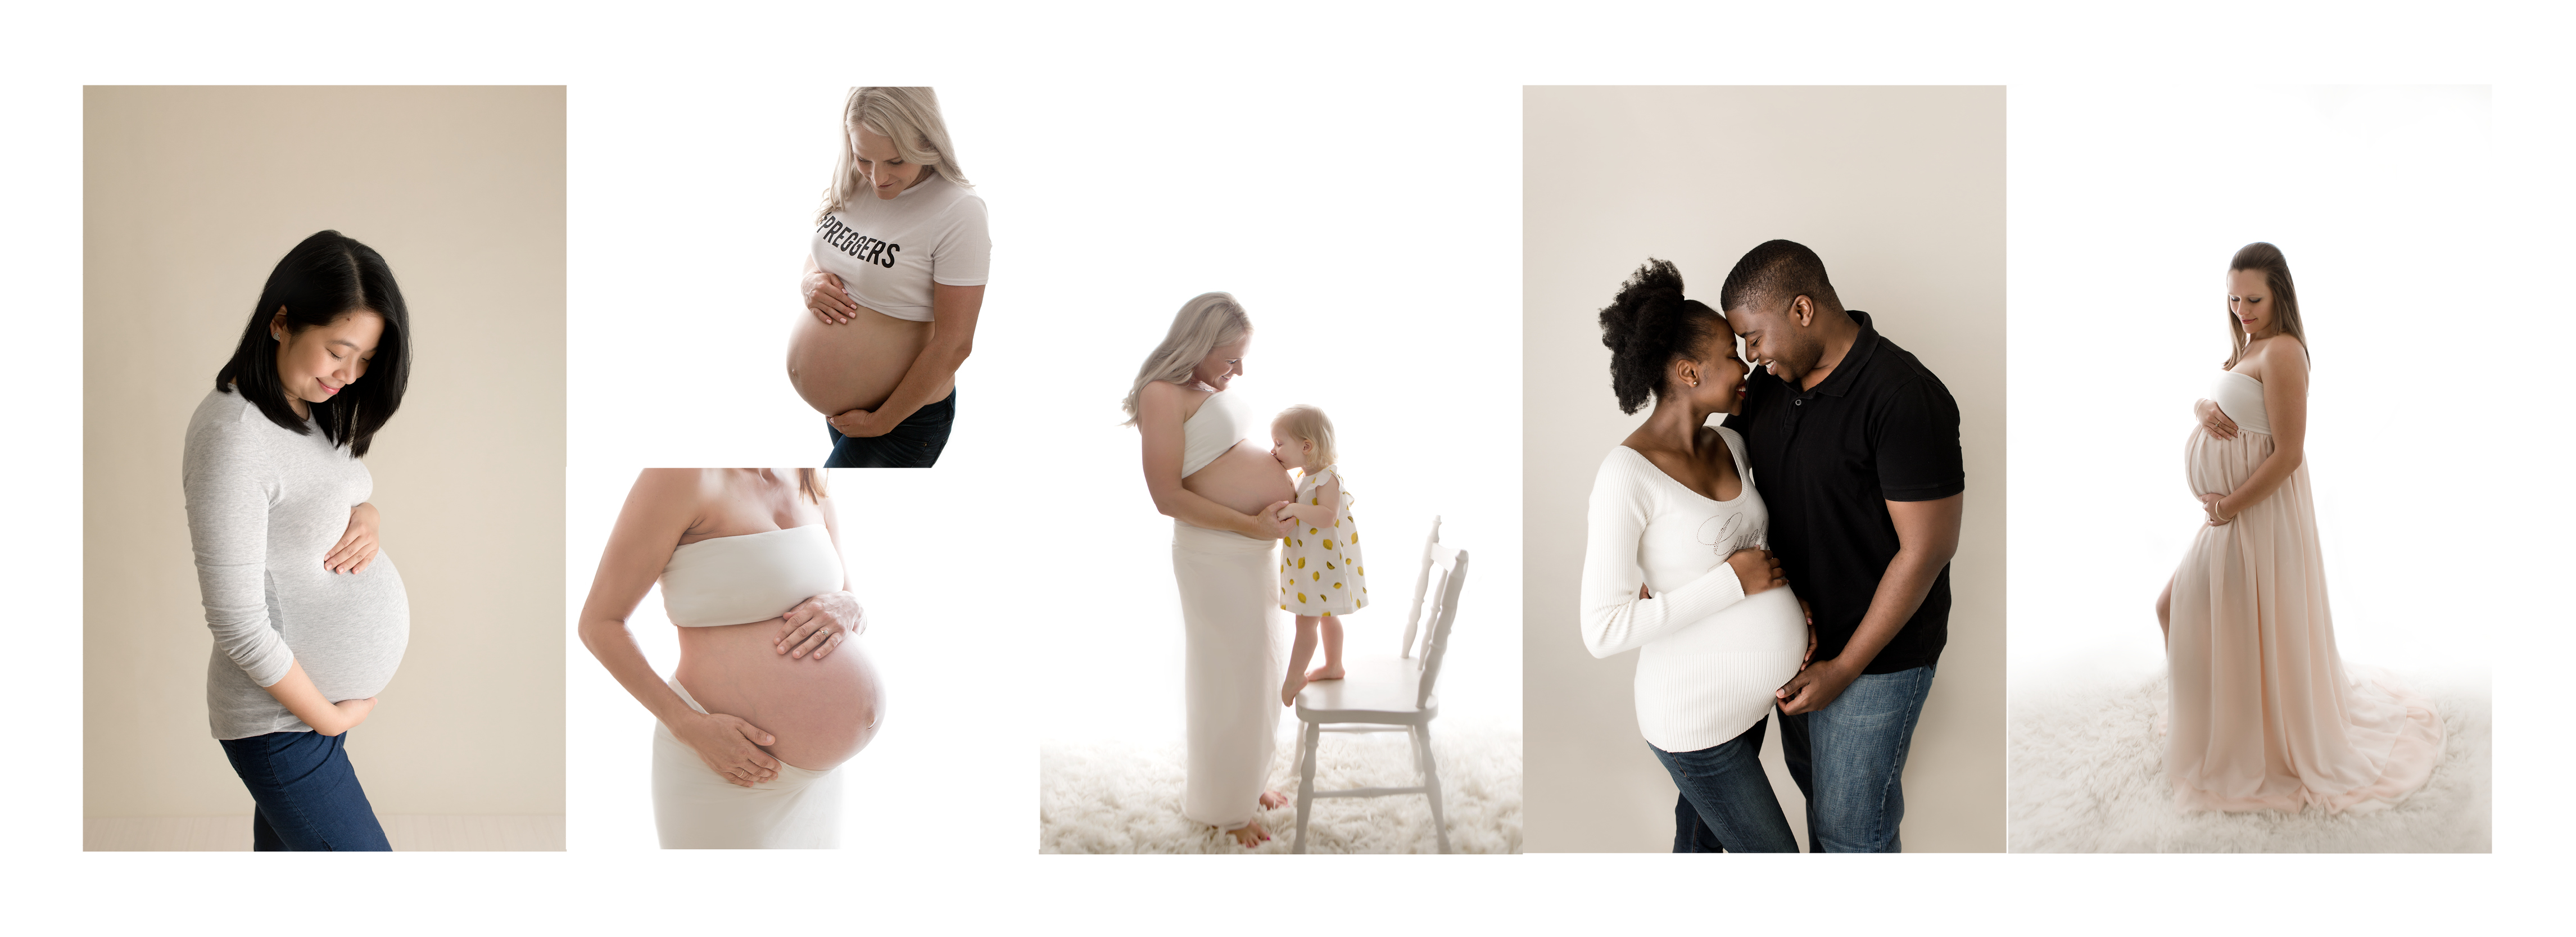 pregnancy brisbane australia maternity photographer